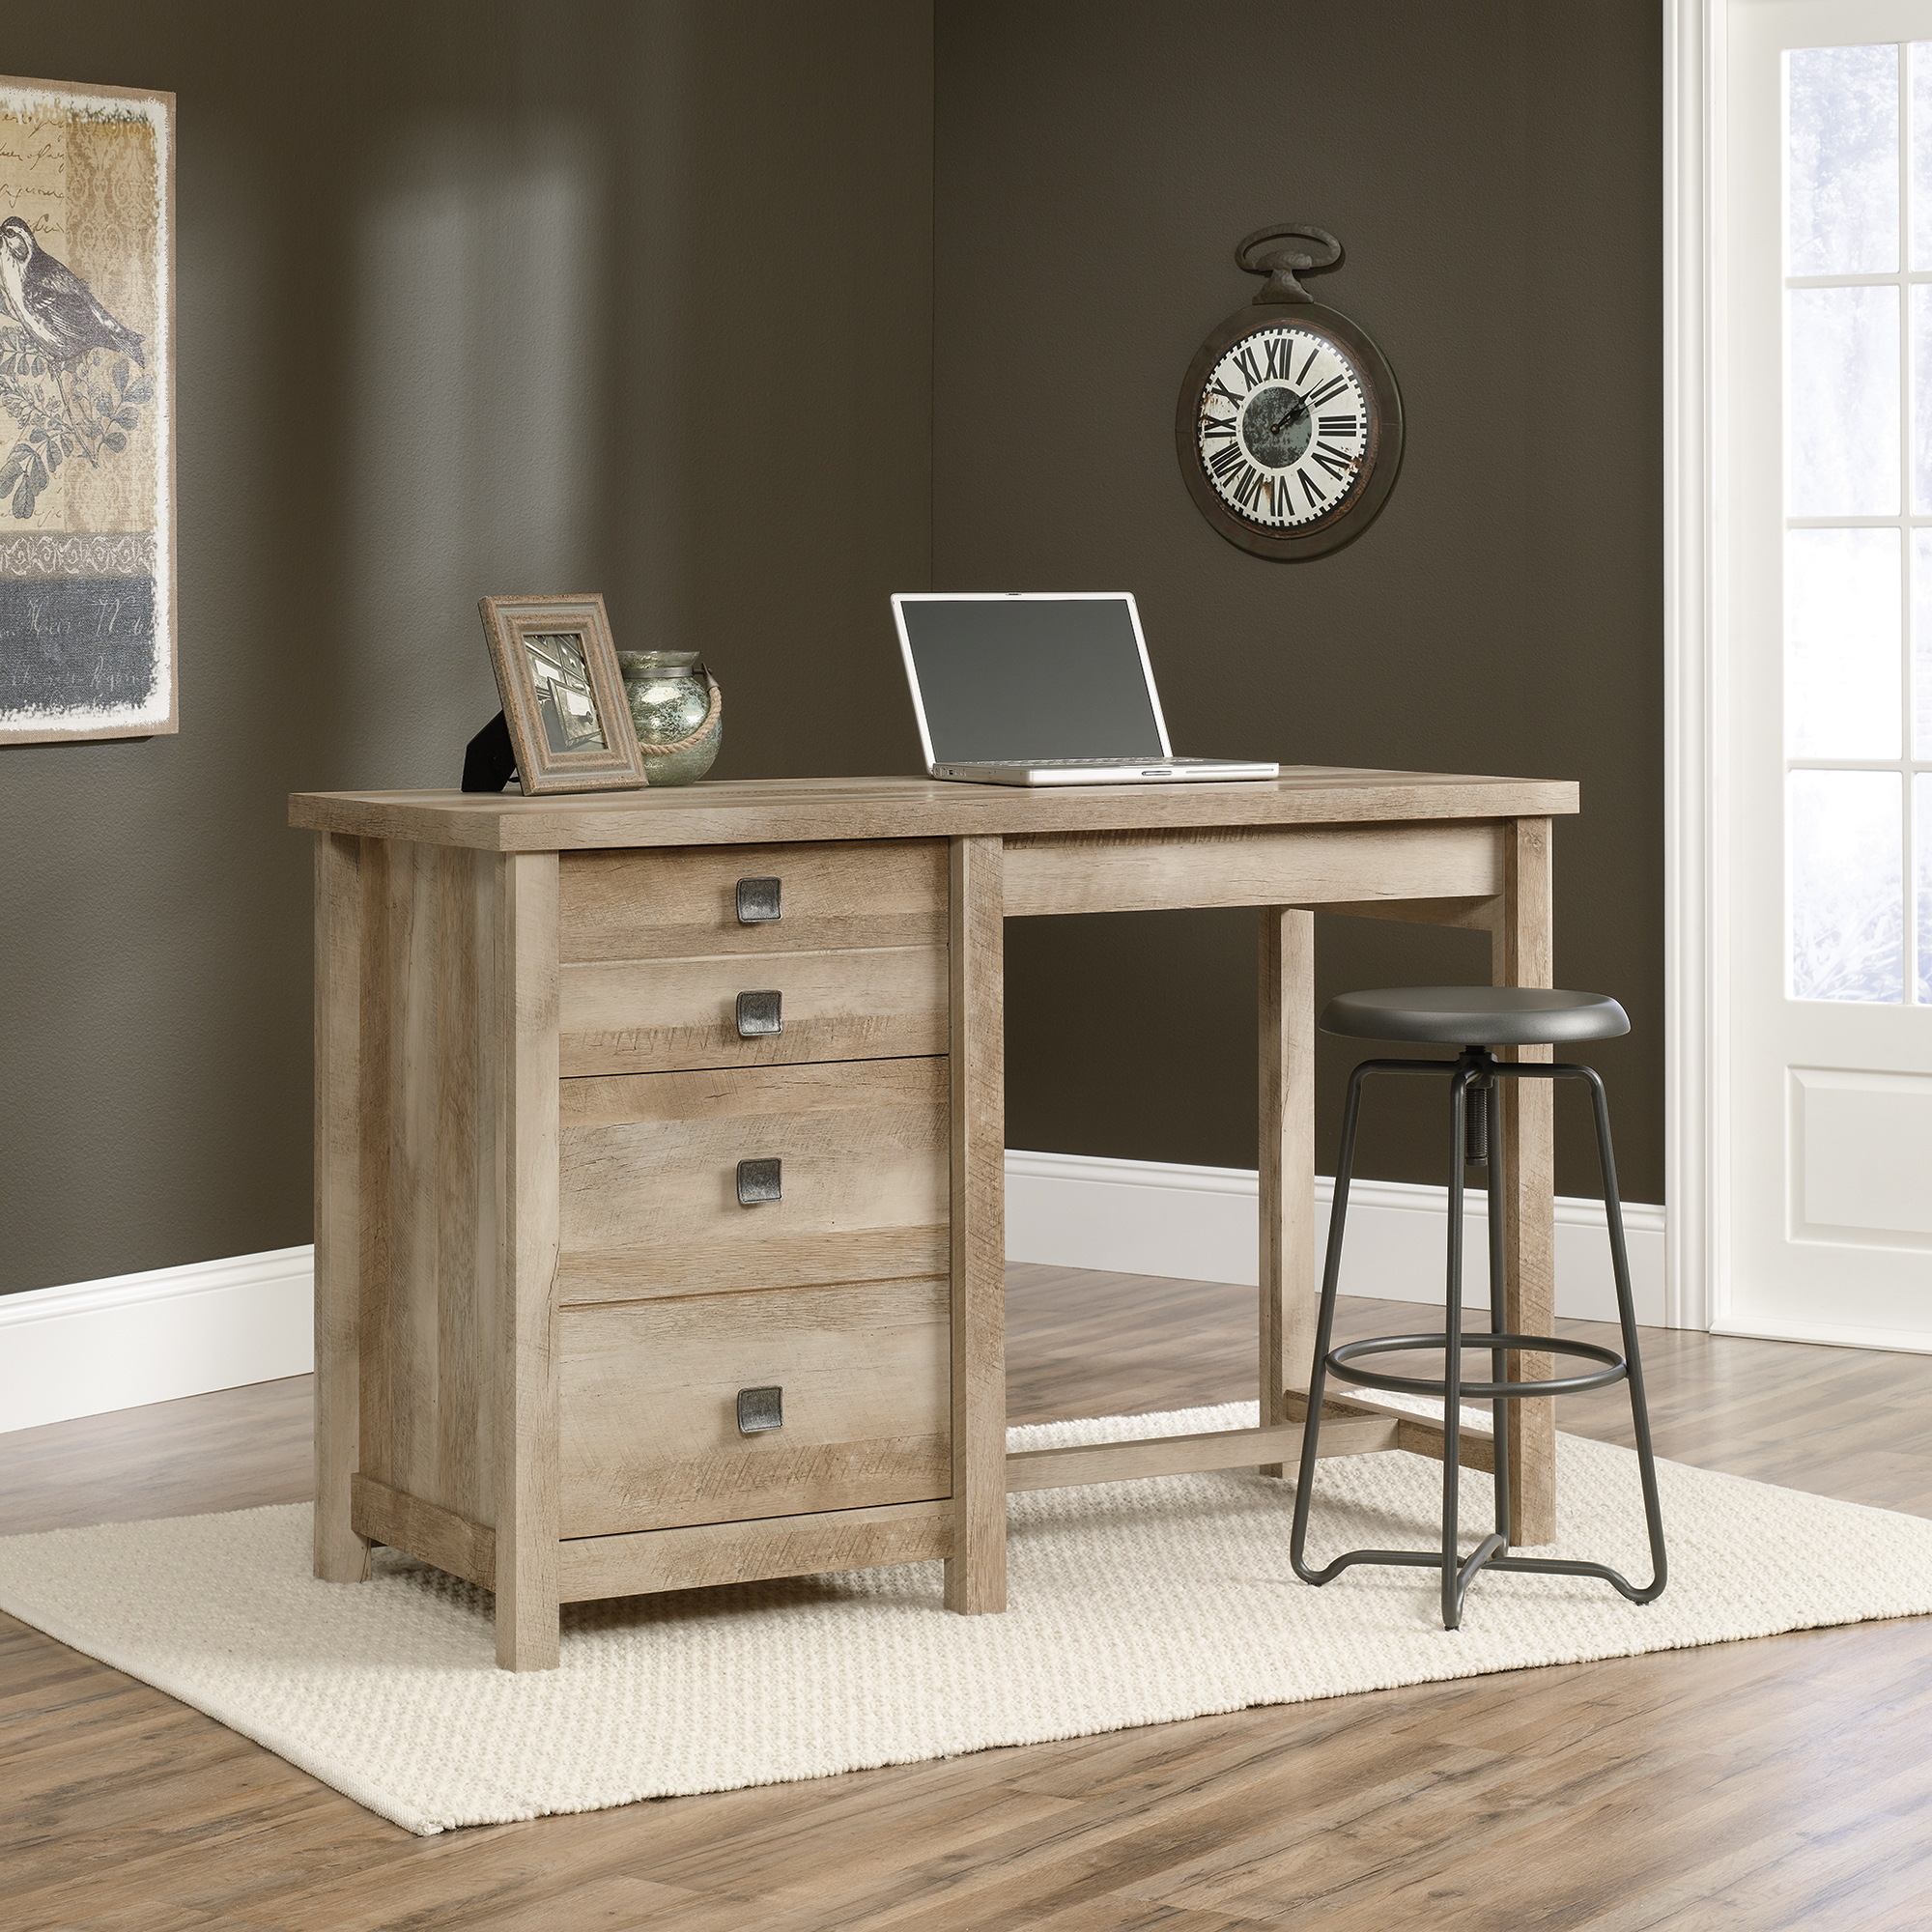 wonderful wooden desk by sauder furniture and stool on white rug for home office decor ideas